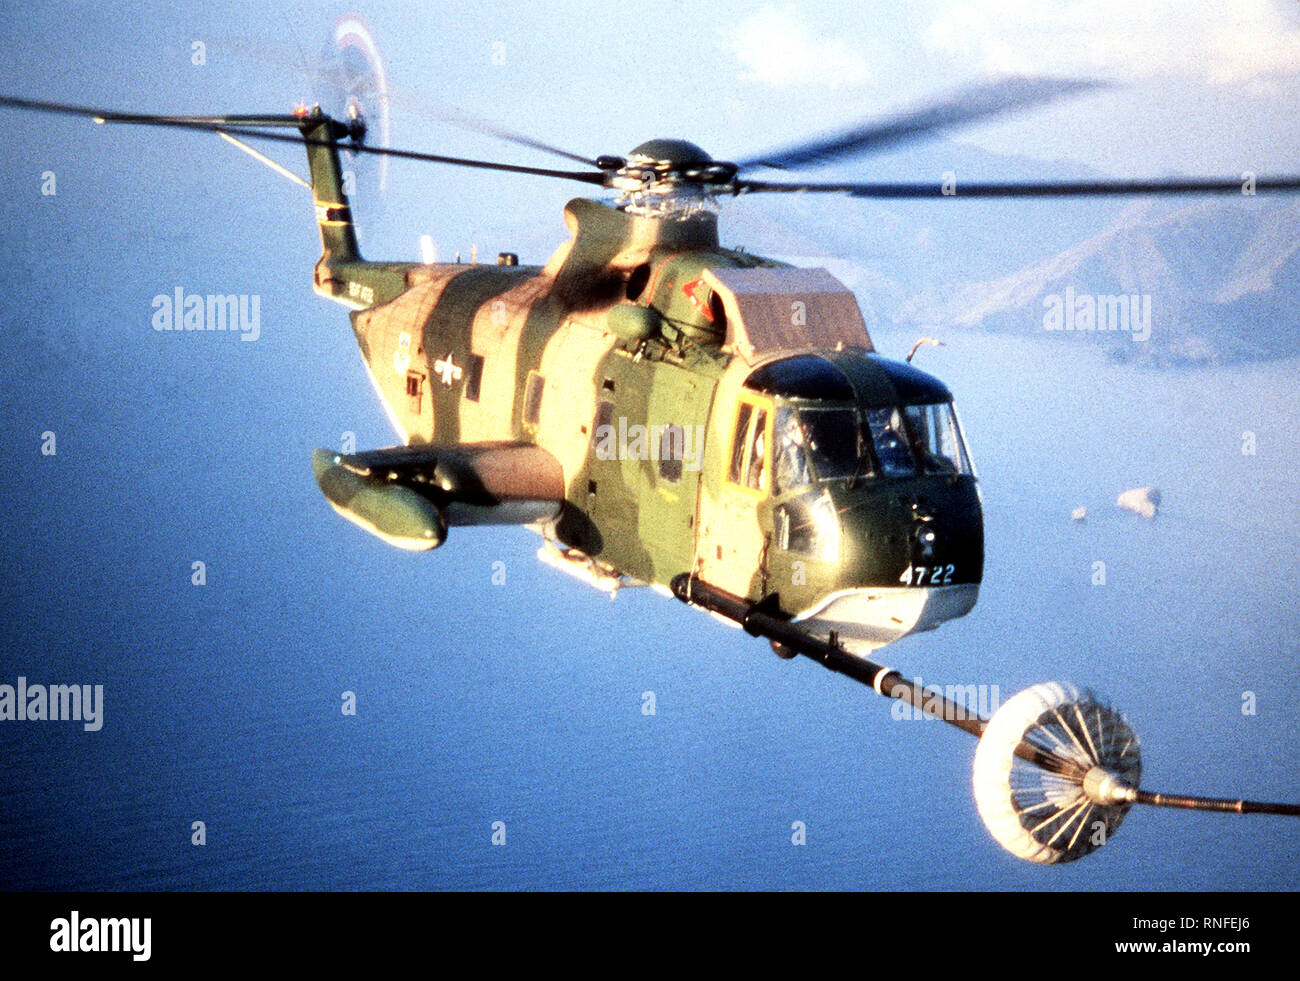 Right front view of a HH-3E Jolly Green Giant helicopter refueling from another aircraft while in flight. - Stock Image